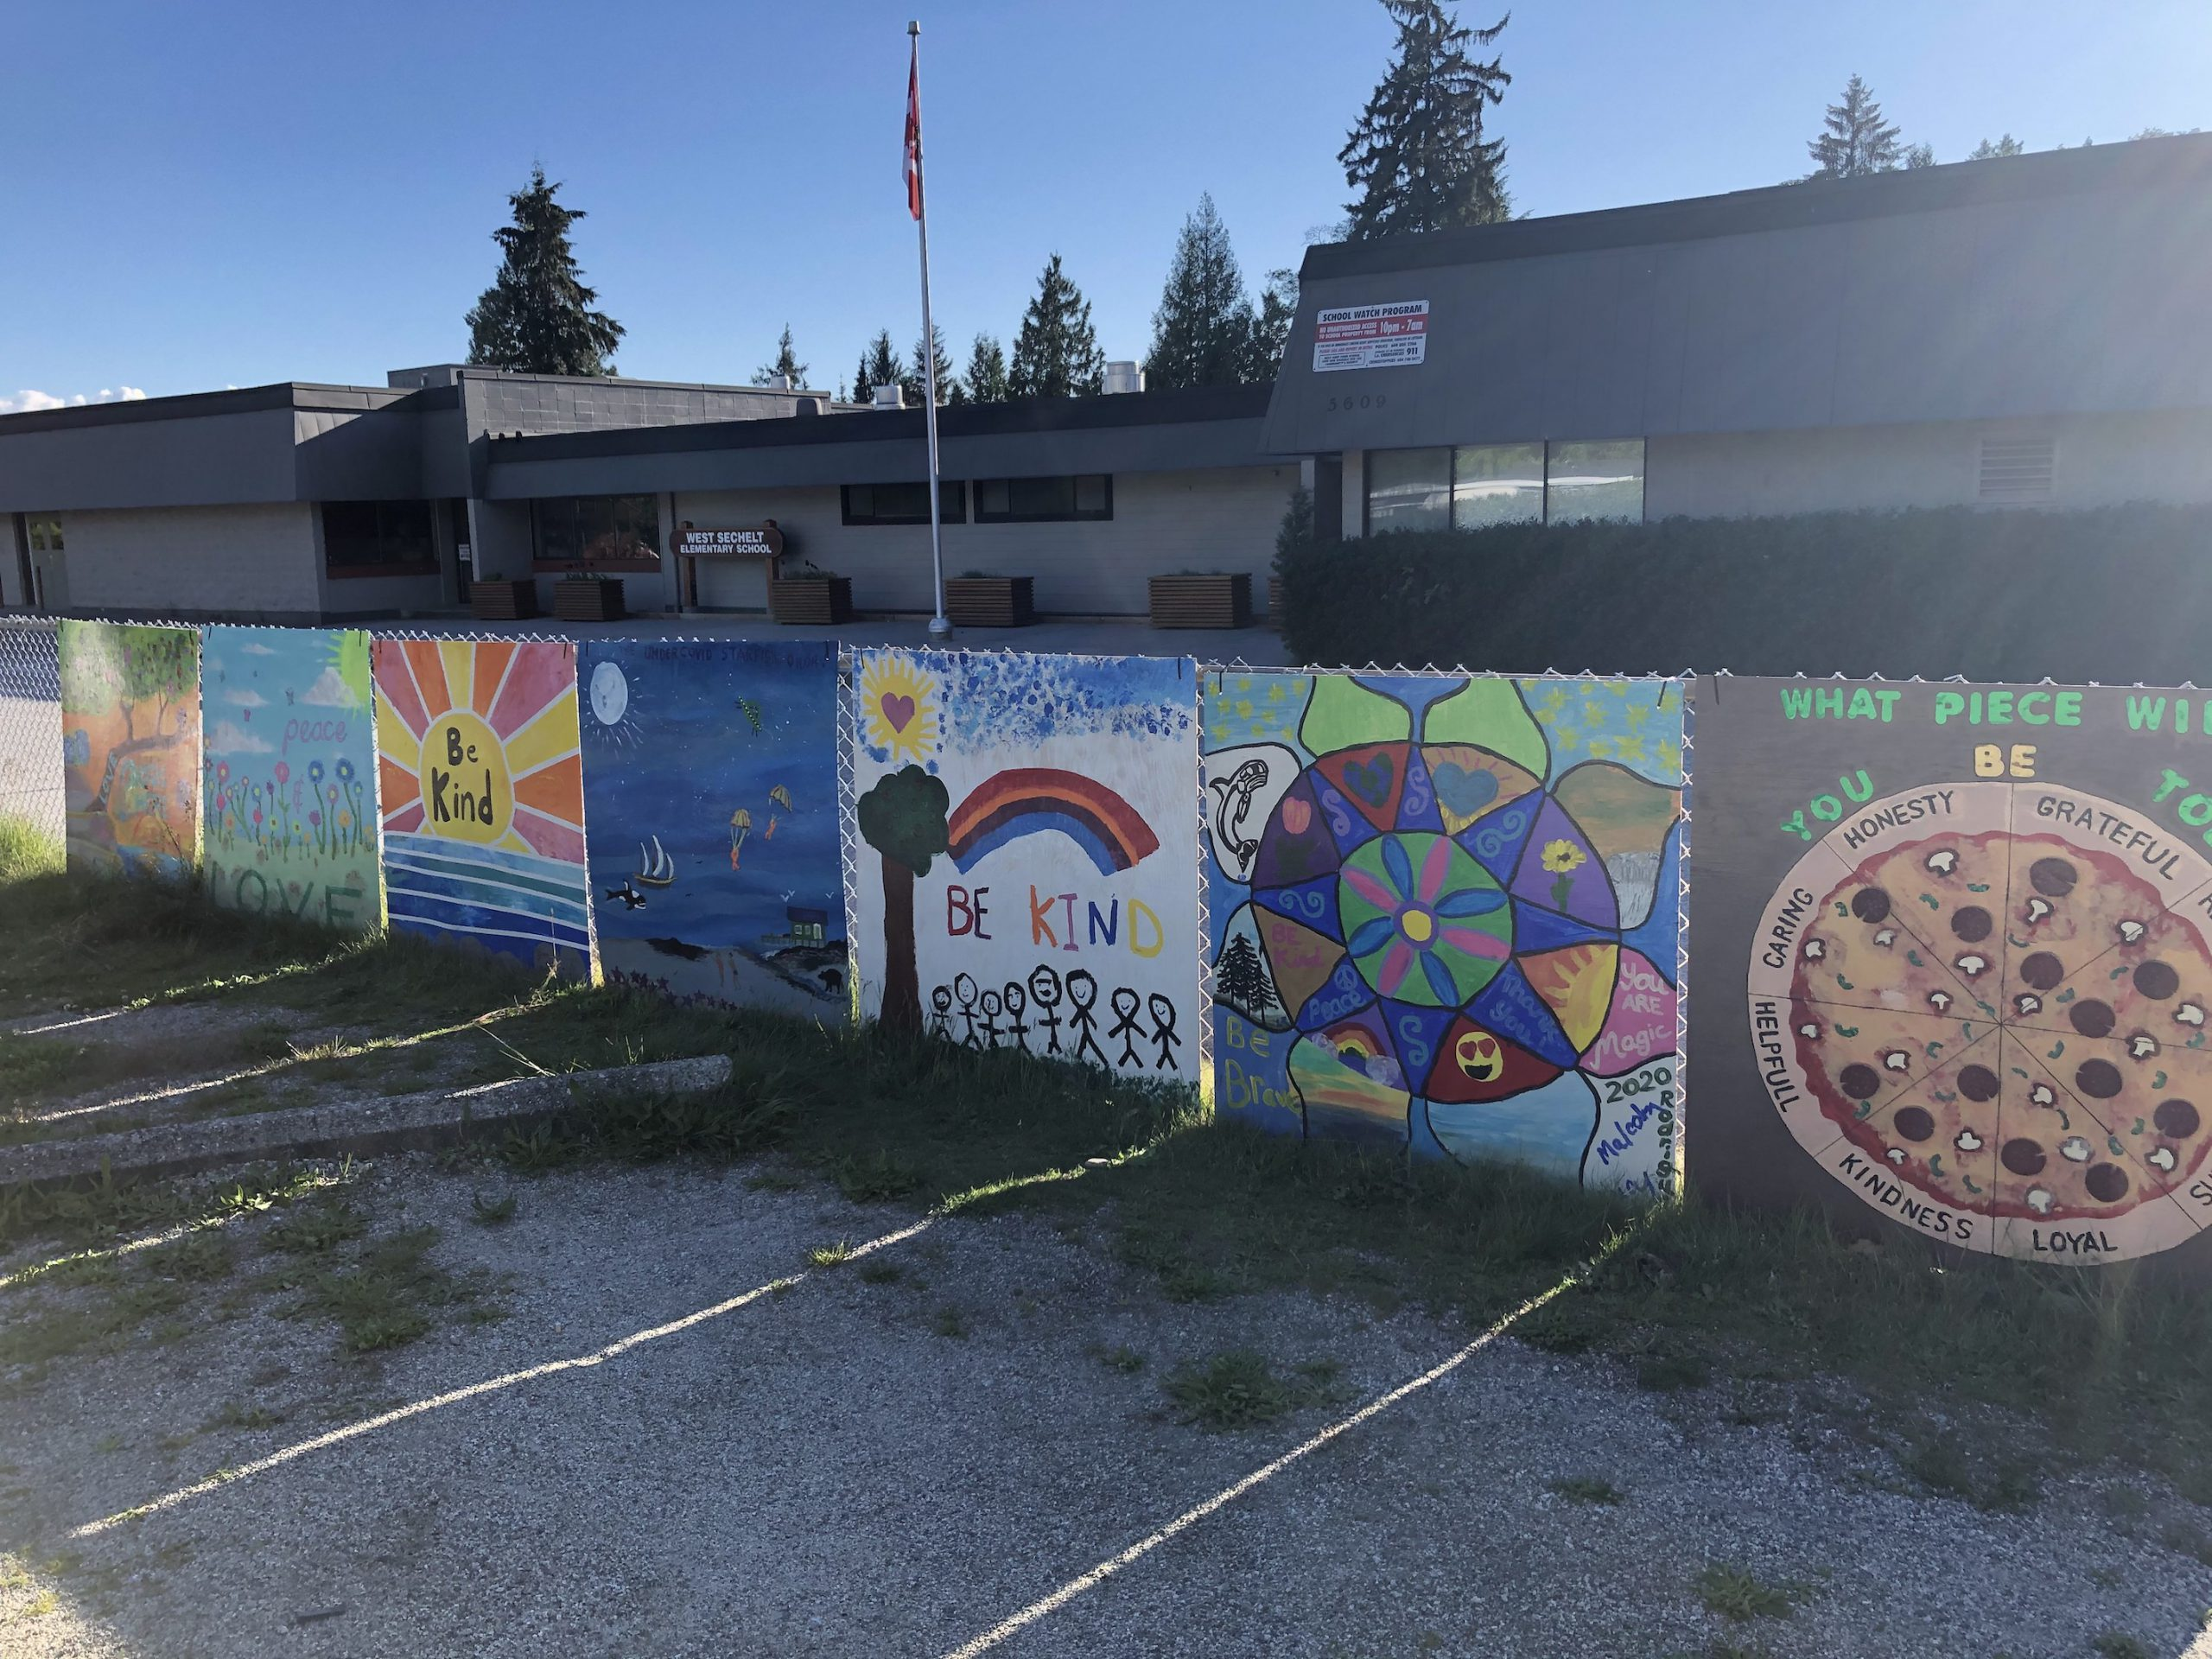 West Sechelt Elementary Teacher Michelle Smart contacted Rona Coast Builders in Sechelt and they donated 30 4'x4' pieces of plywood for a community mural project. Here are the first 7!